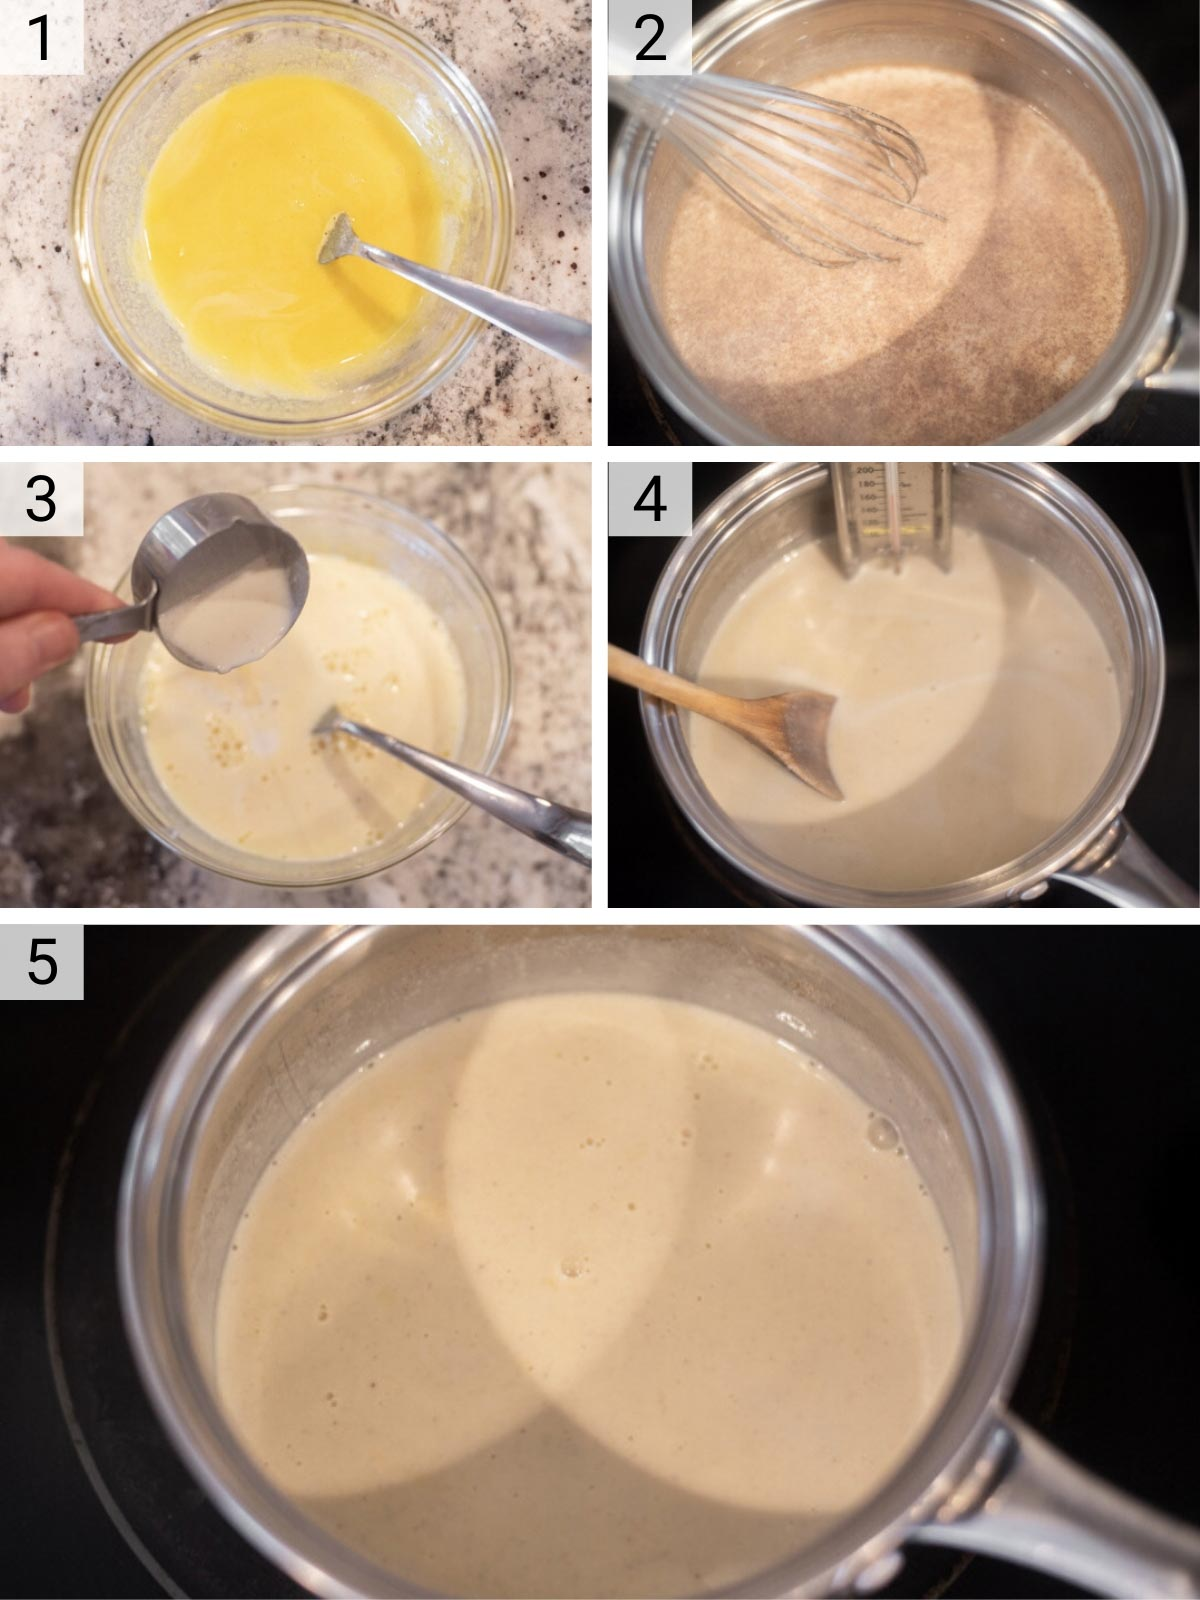 process shots of how to make homemade eggnog